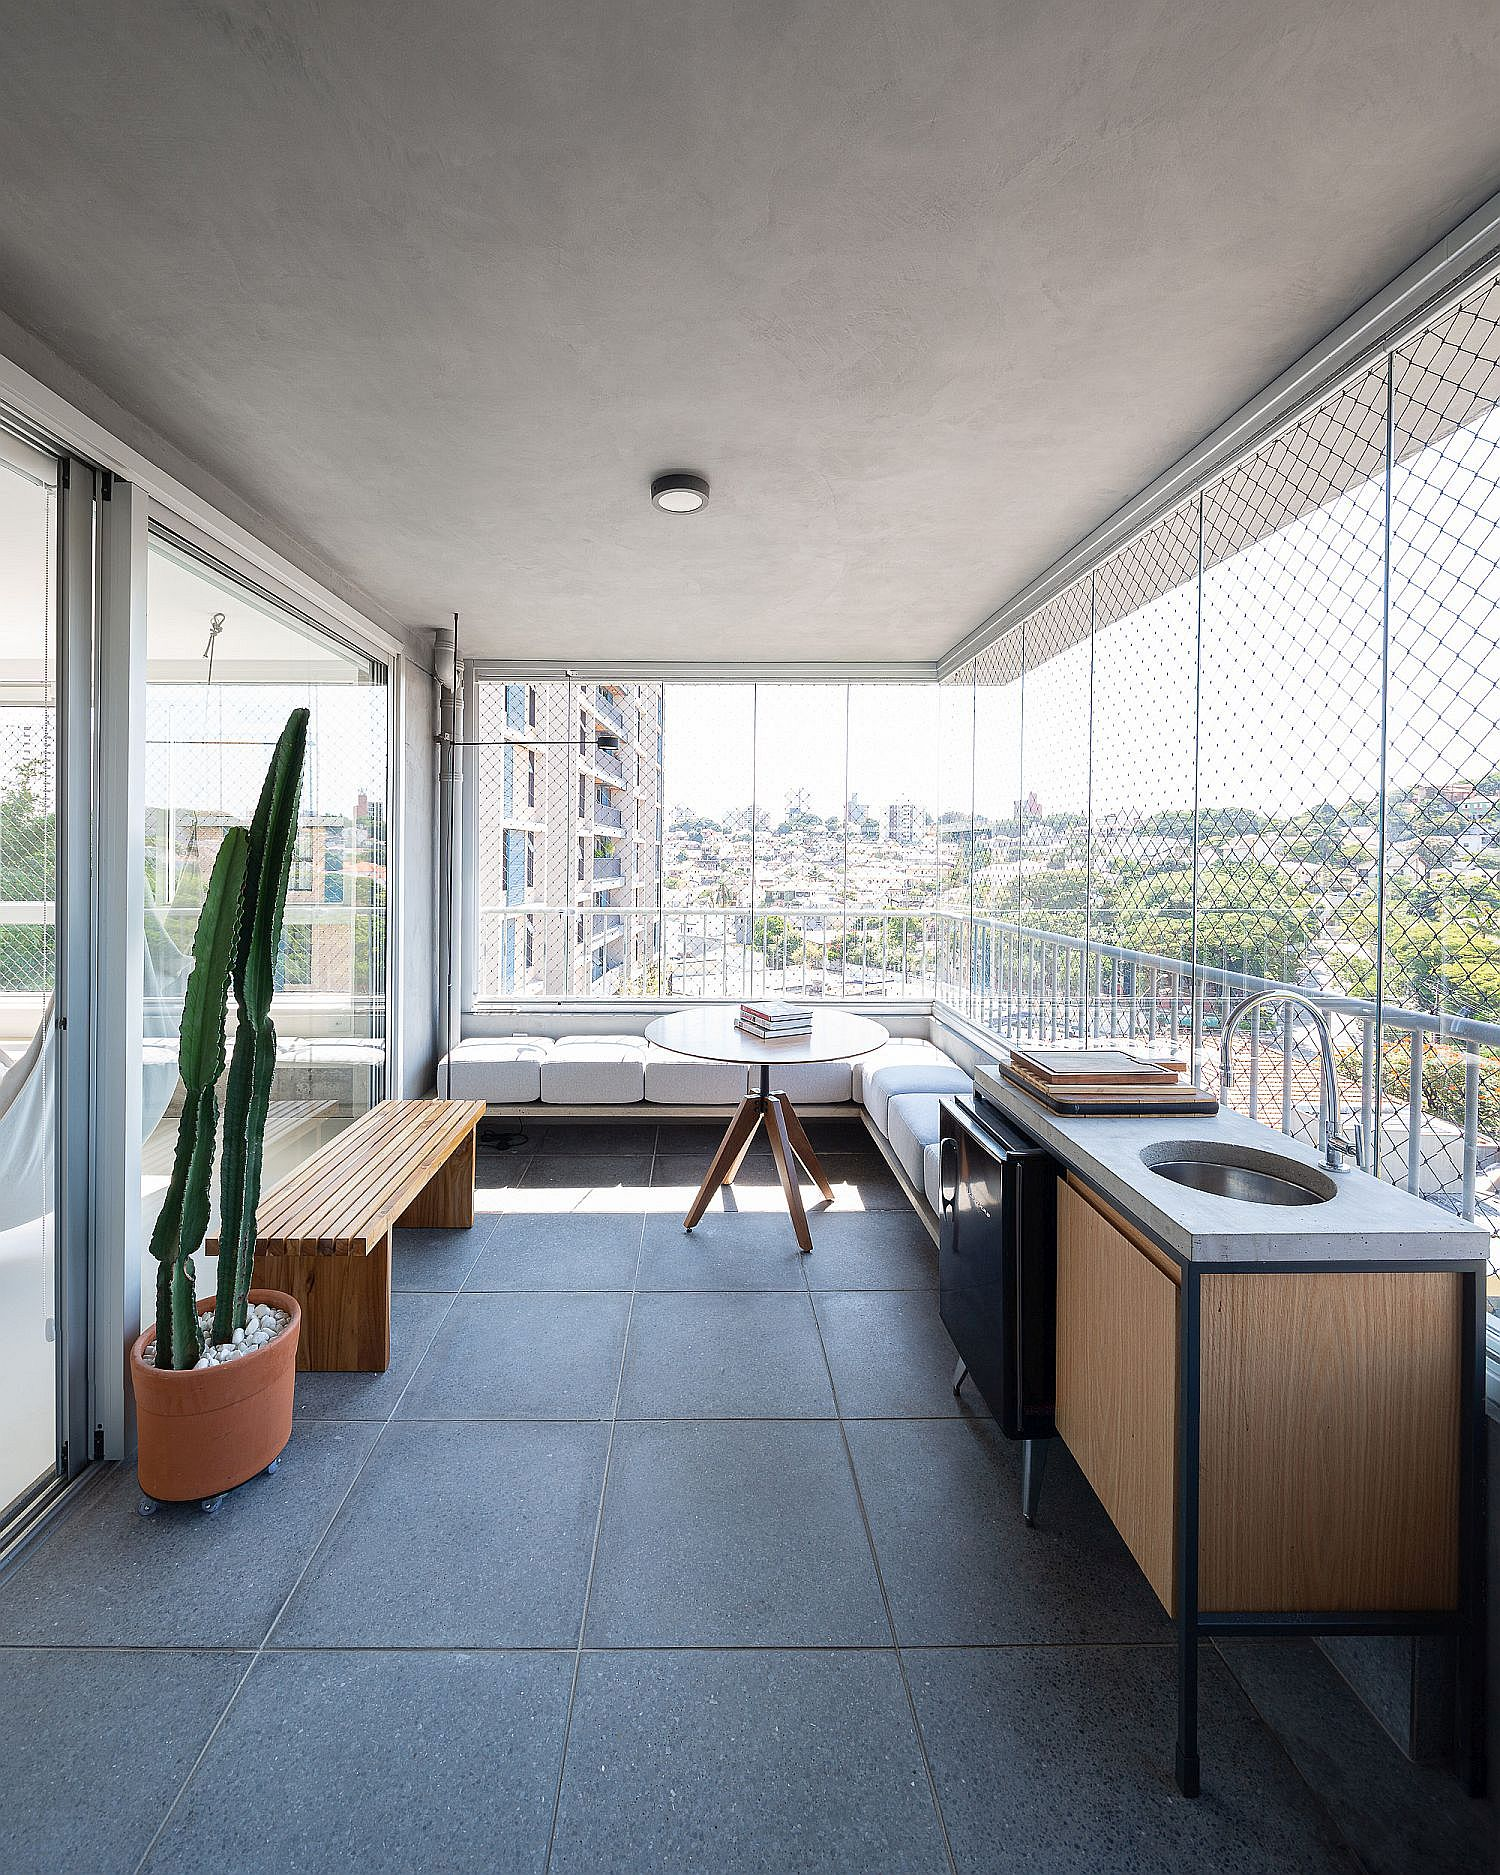 Mesh and glass walls for the balcony create a sheltered space that feels like an extension of the living room